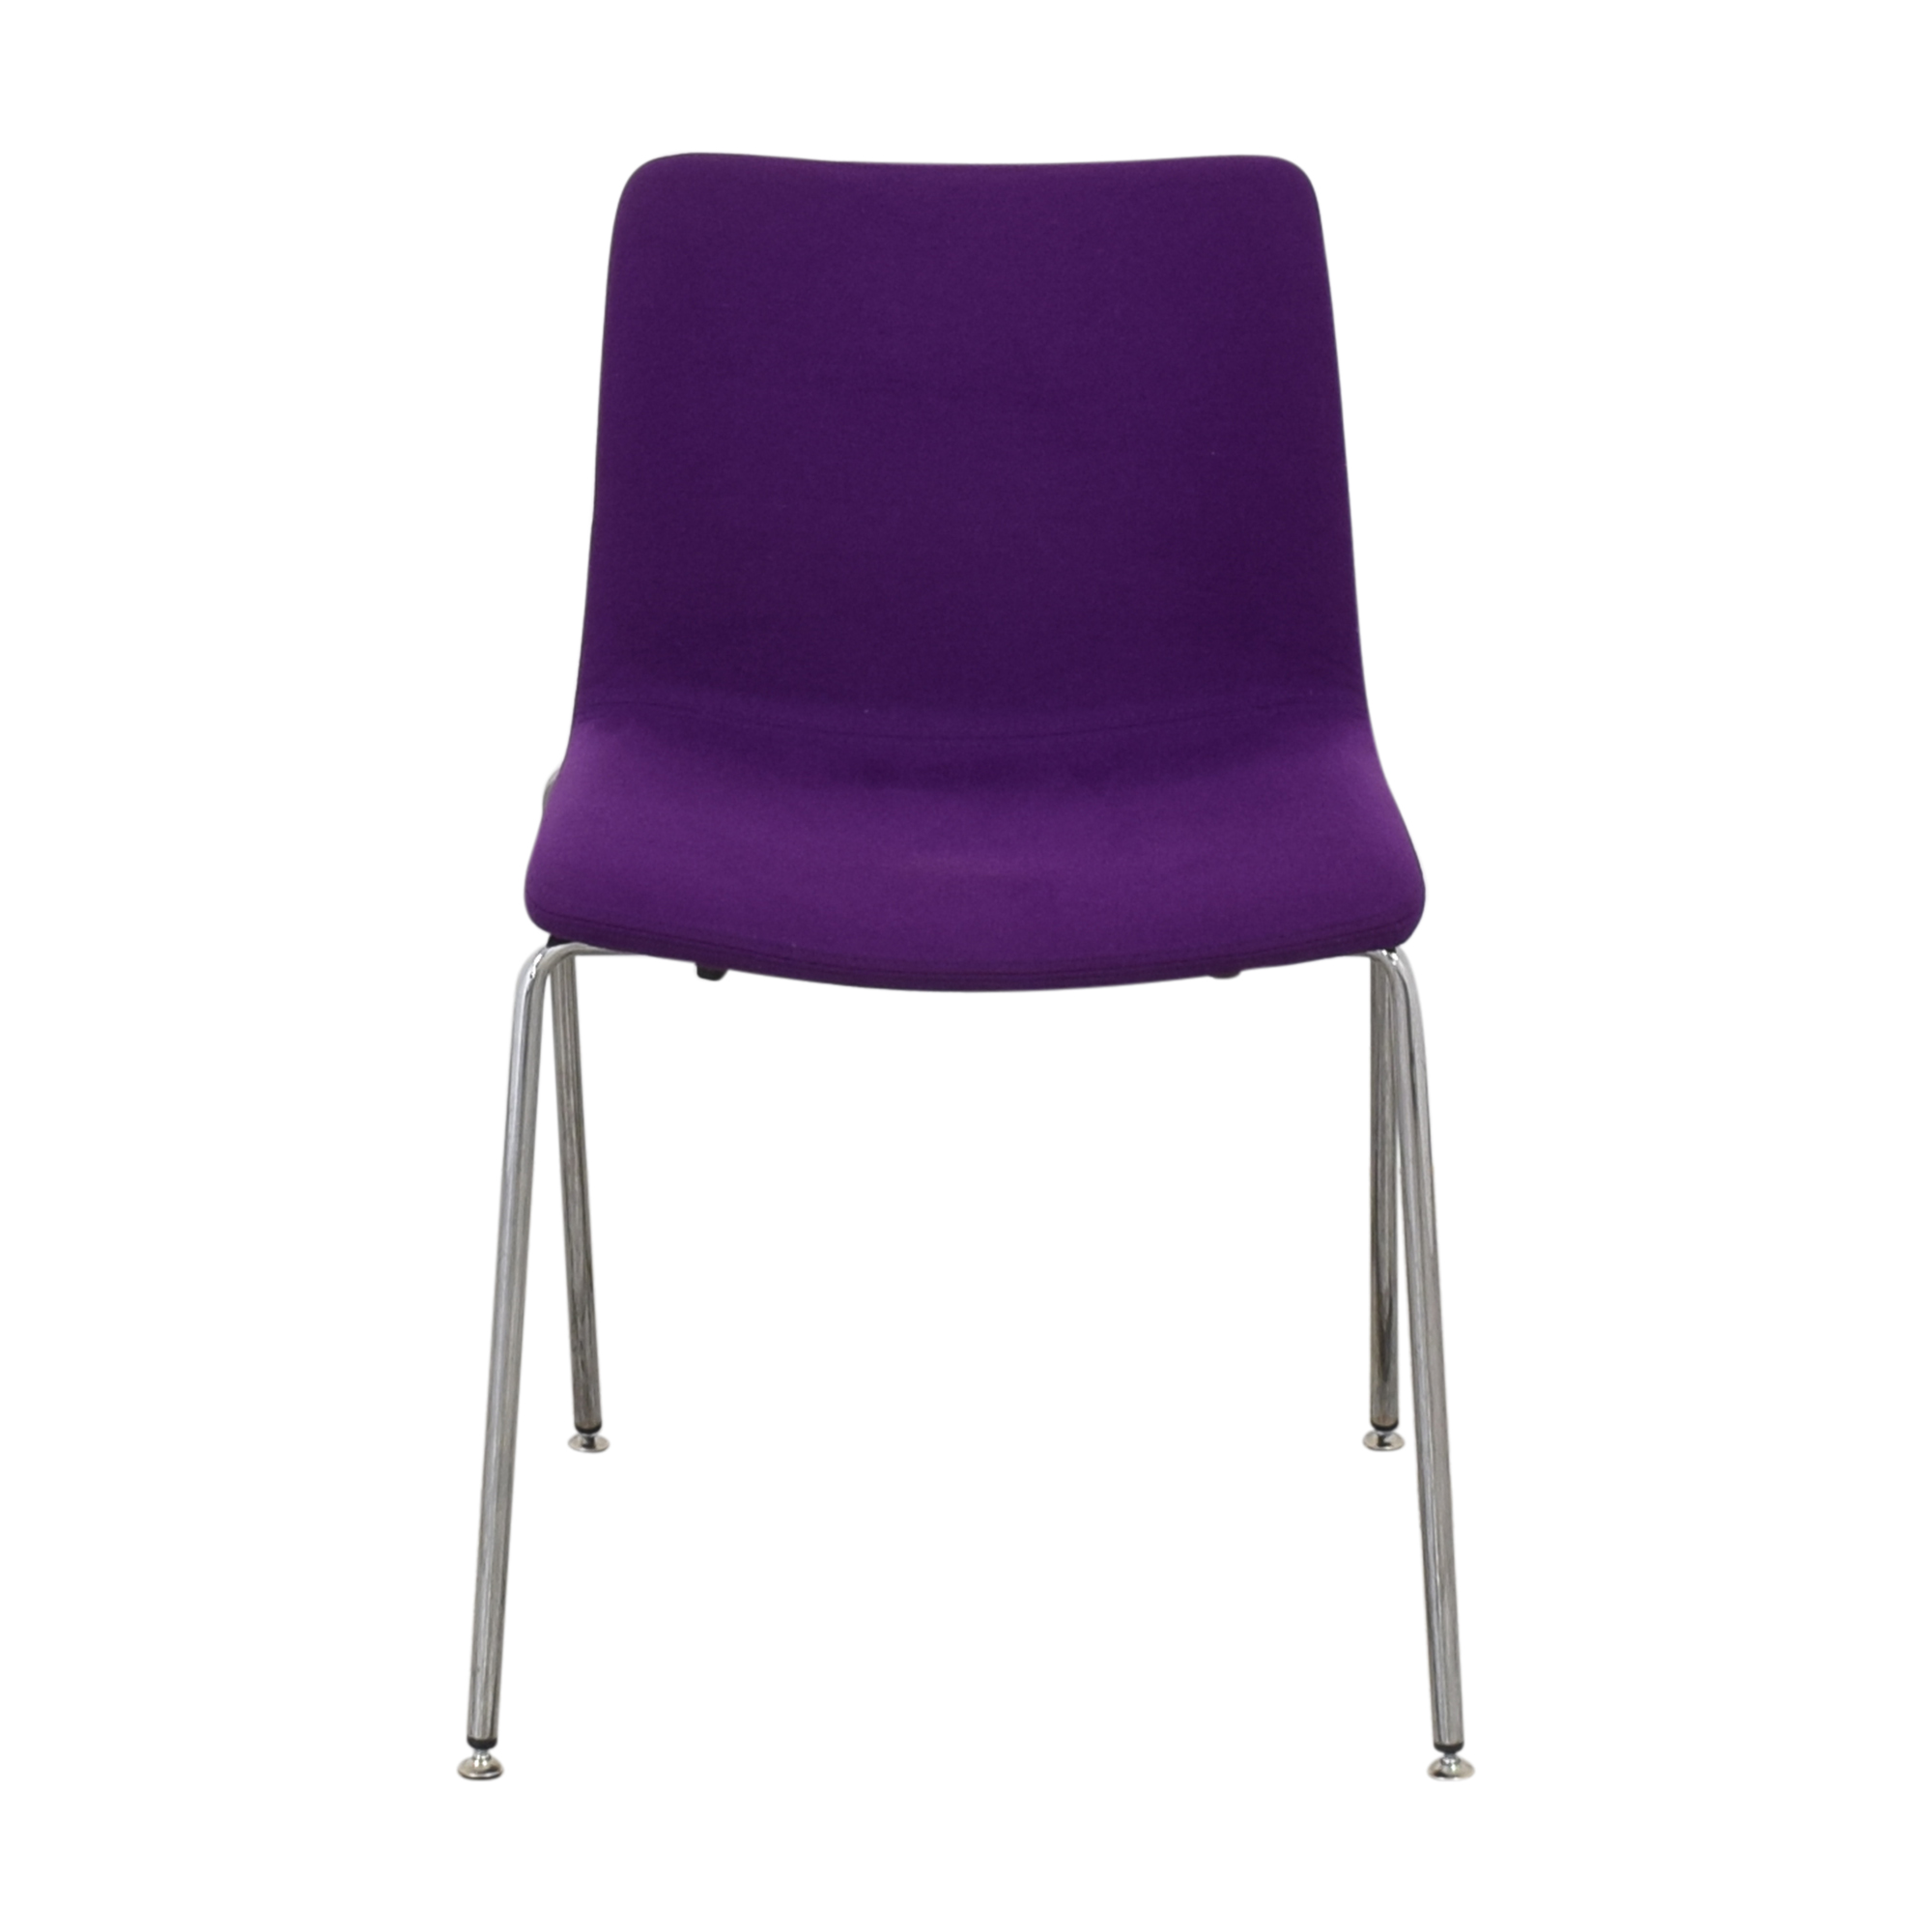 buy Koleksiyon Helen Armless Chair Koleksiyon Accent Chairs